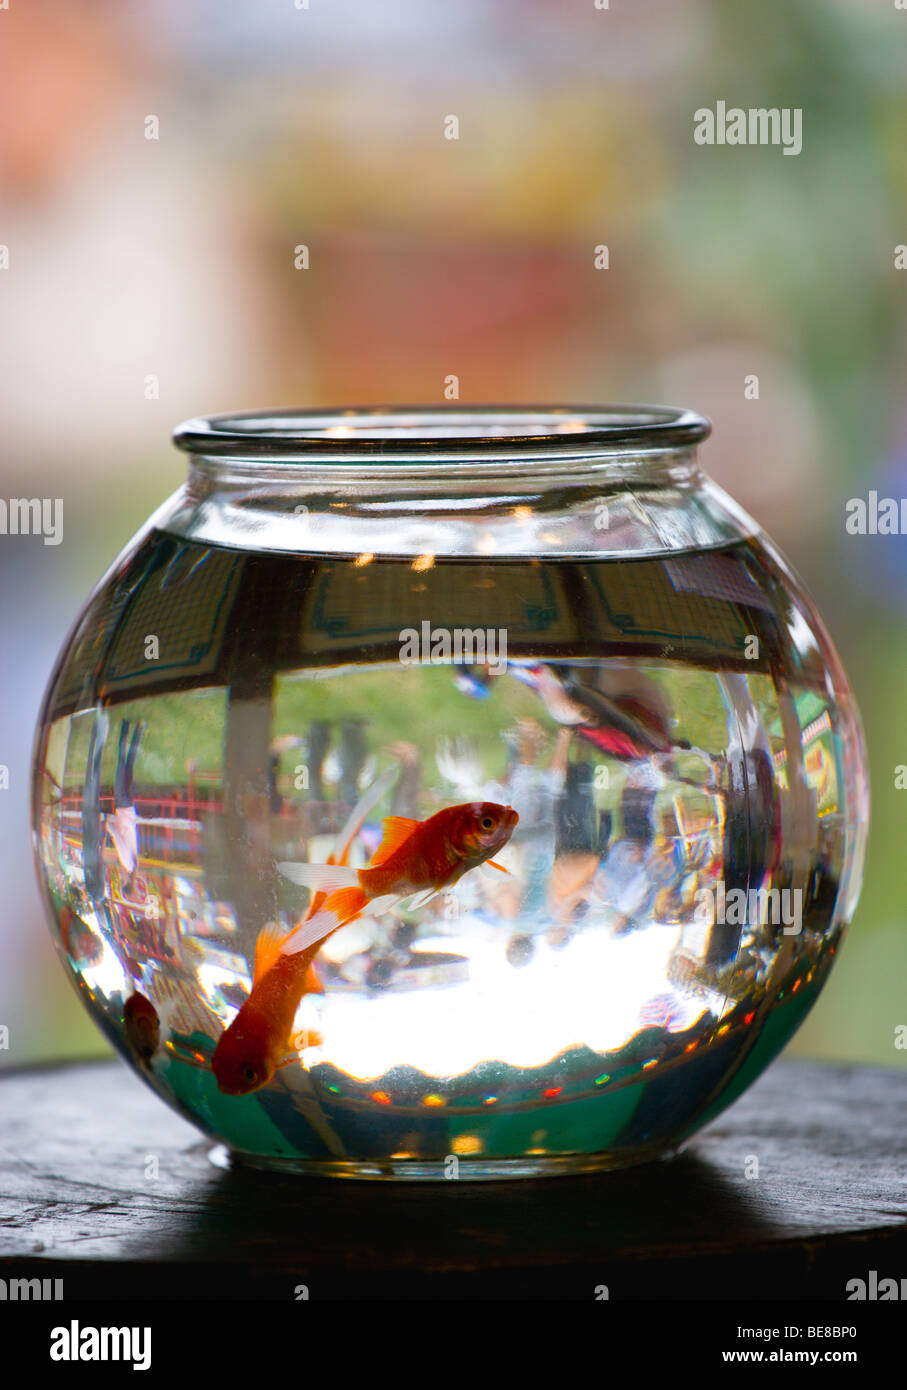 ENGLAND West Sussex Findon Village Sheep Fair Goldfish in glass bowl with refraction image of people inverted. - Stock Image